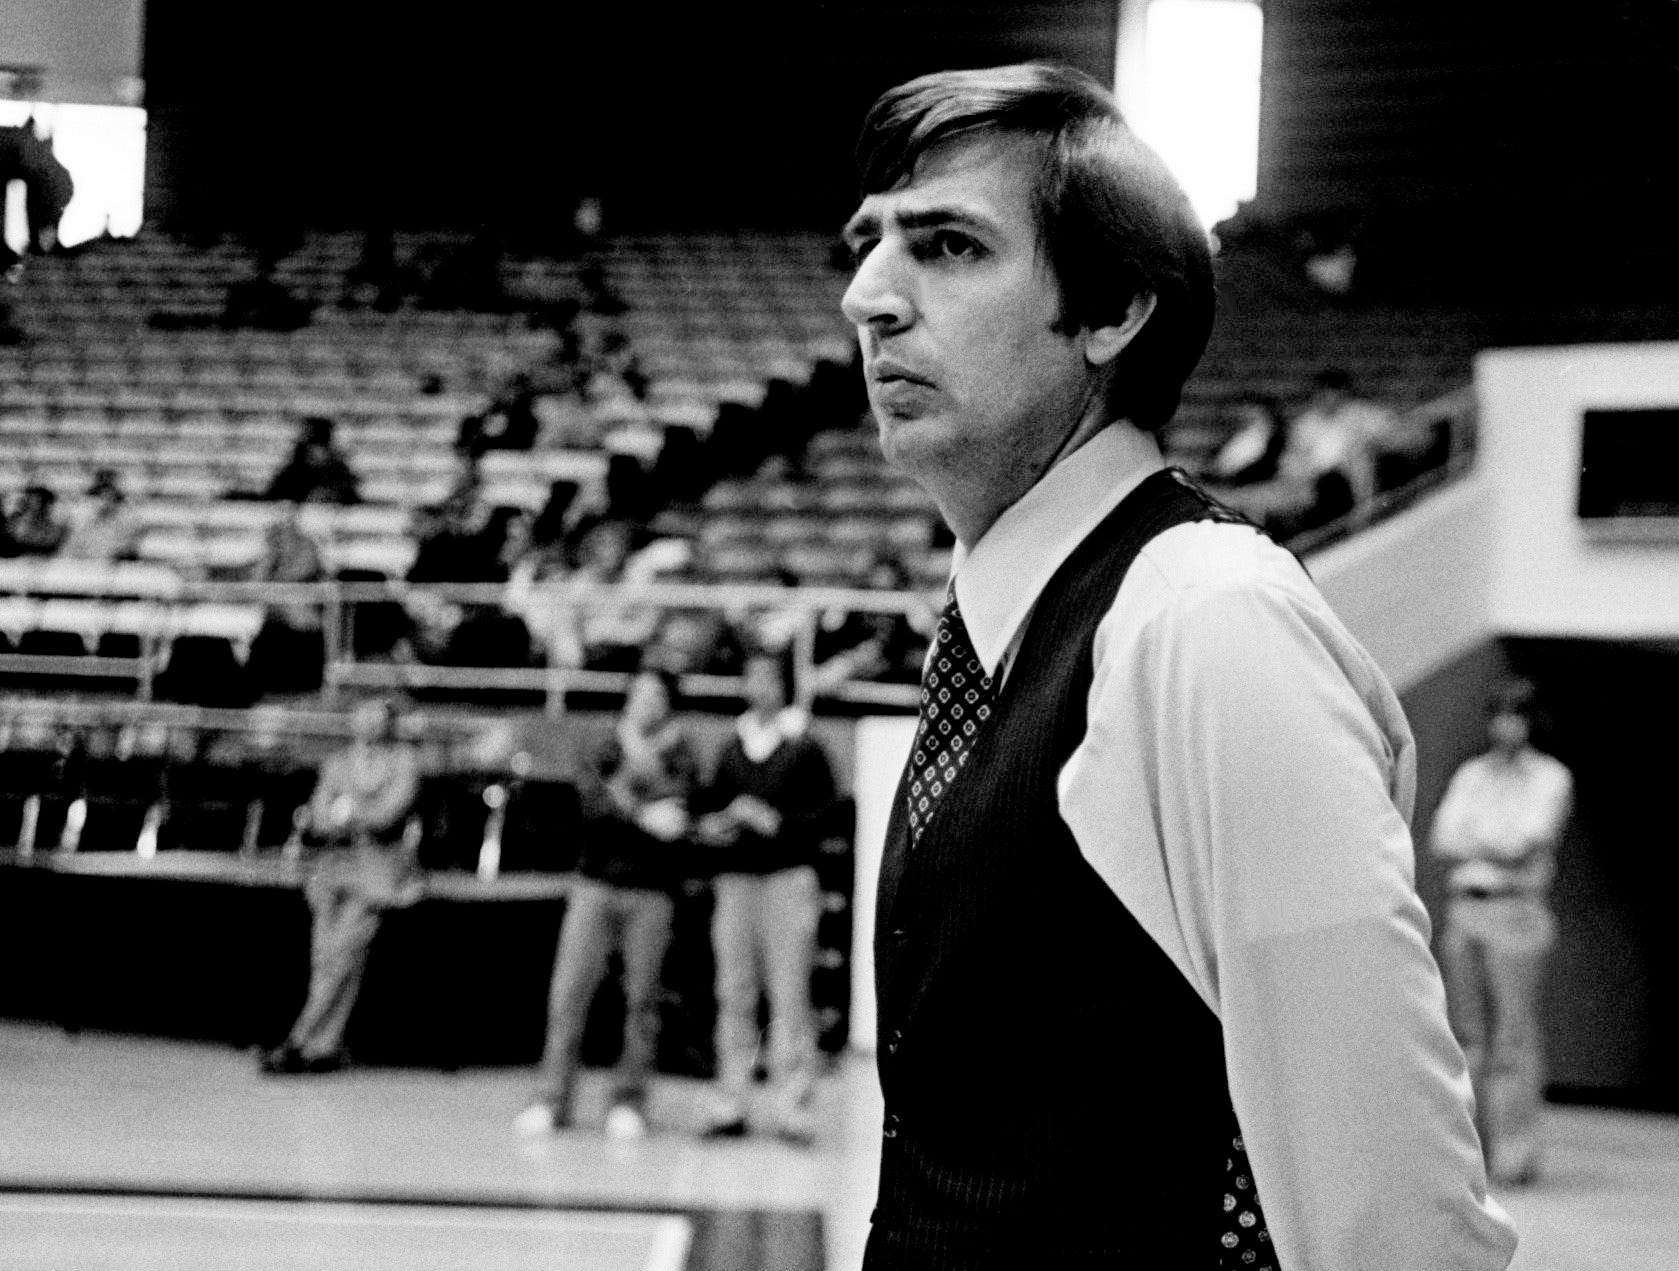 Tennessee head coach Don DeVoe keeps an eye on practice at Murphy Center at MTSU in Murfreesboro on March 8, 1979. The Vols will face Eastern Kentucky in the NCAA Mideast Regional Tournament.